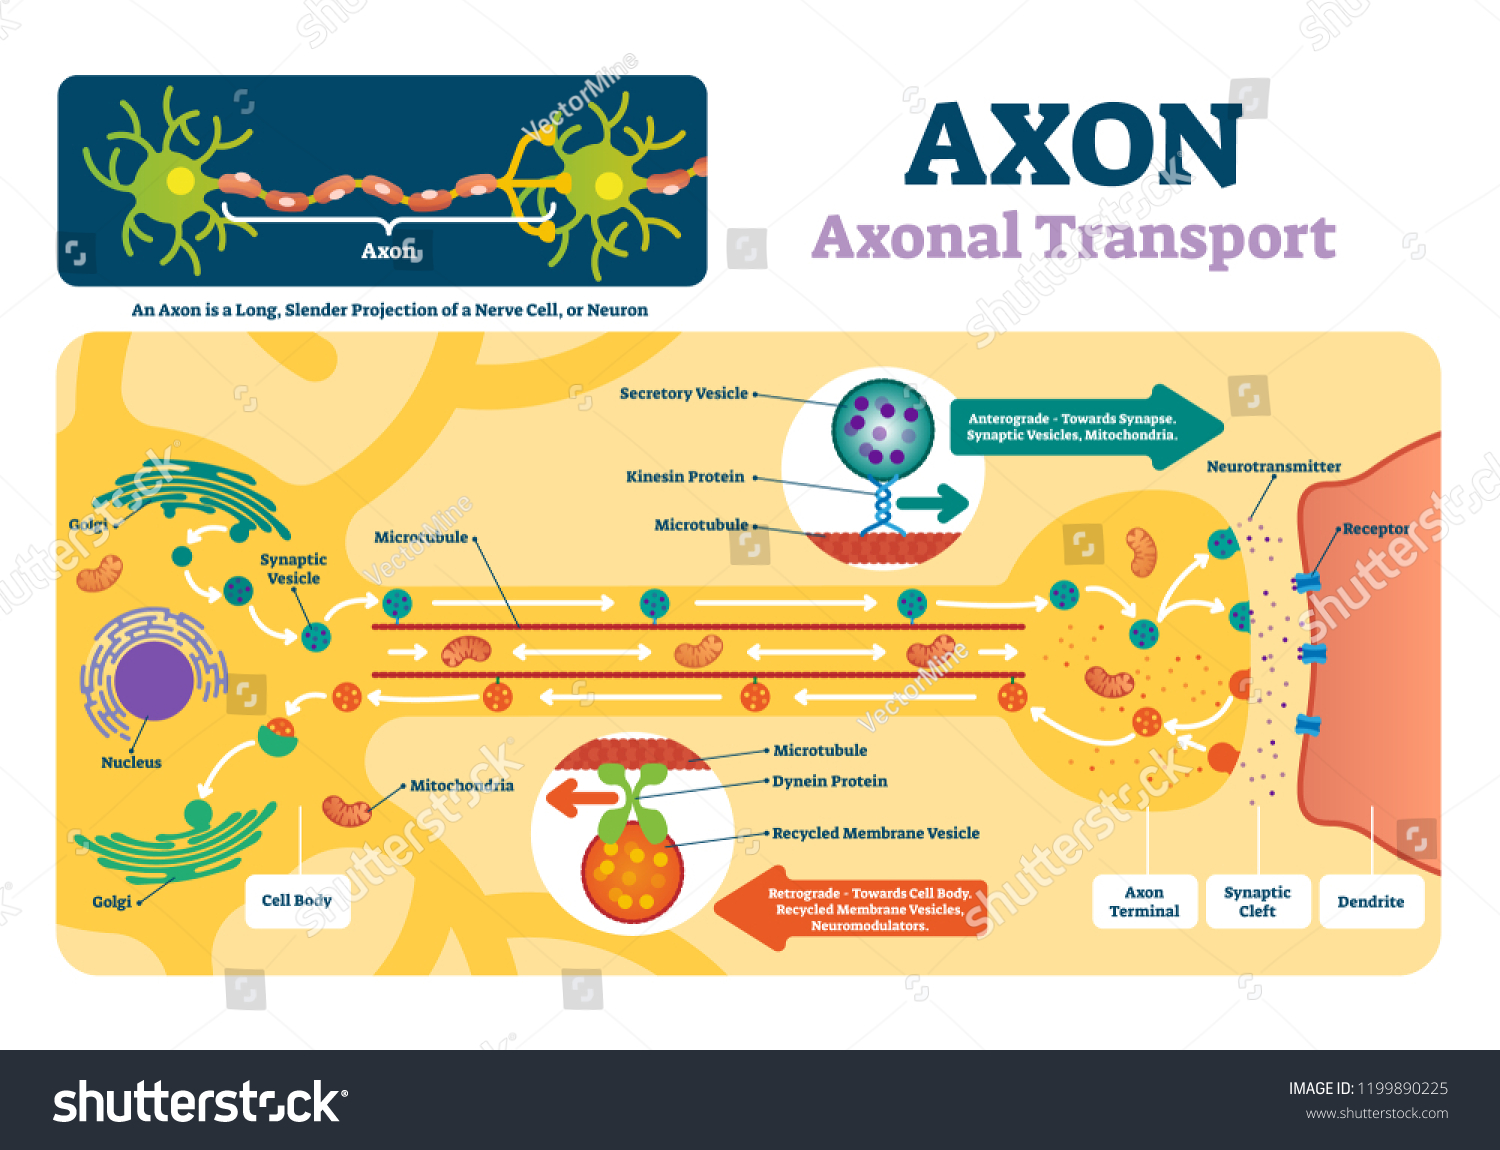 hight resolution of blank axon diagram simple wiring diagram nerve axon axon vector illustration labeled diagram explanation stock vector